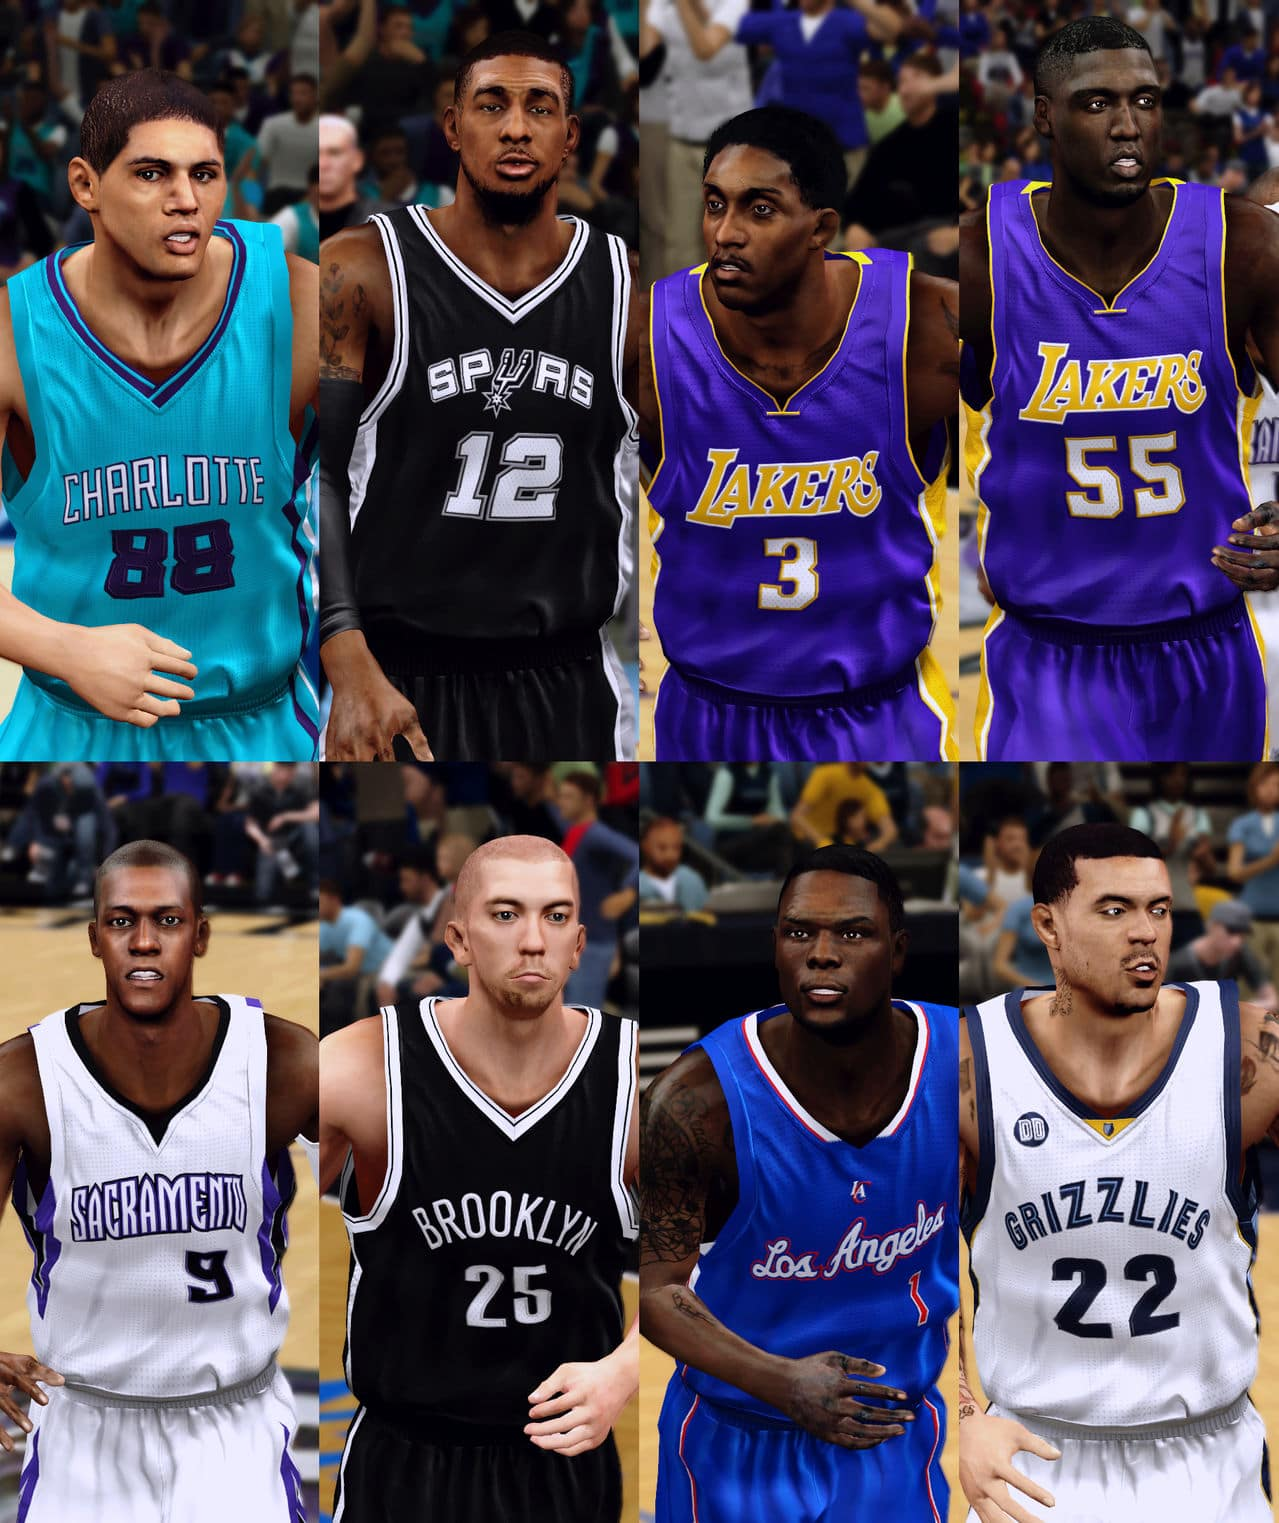 MAJOR BASKETBALL LEAGUE 2K14 - Version 5 RELEASED!!! NEW_Trades